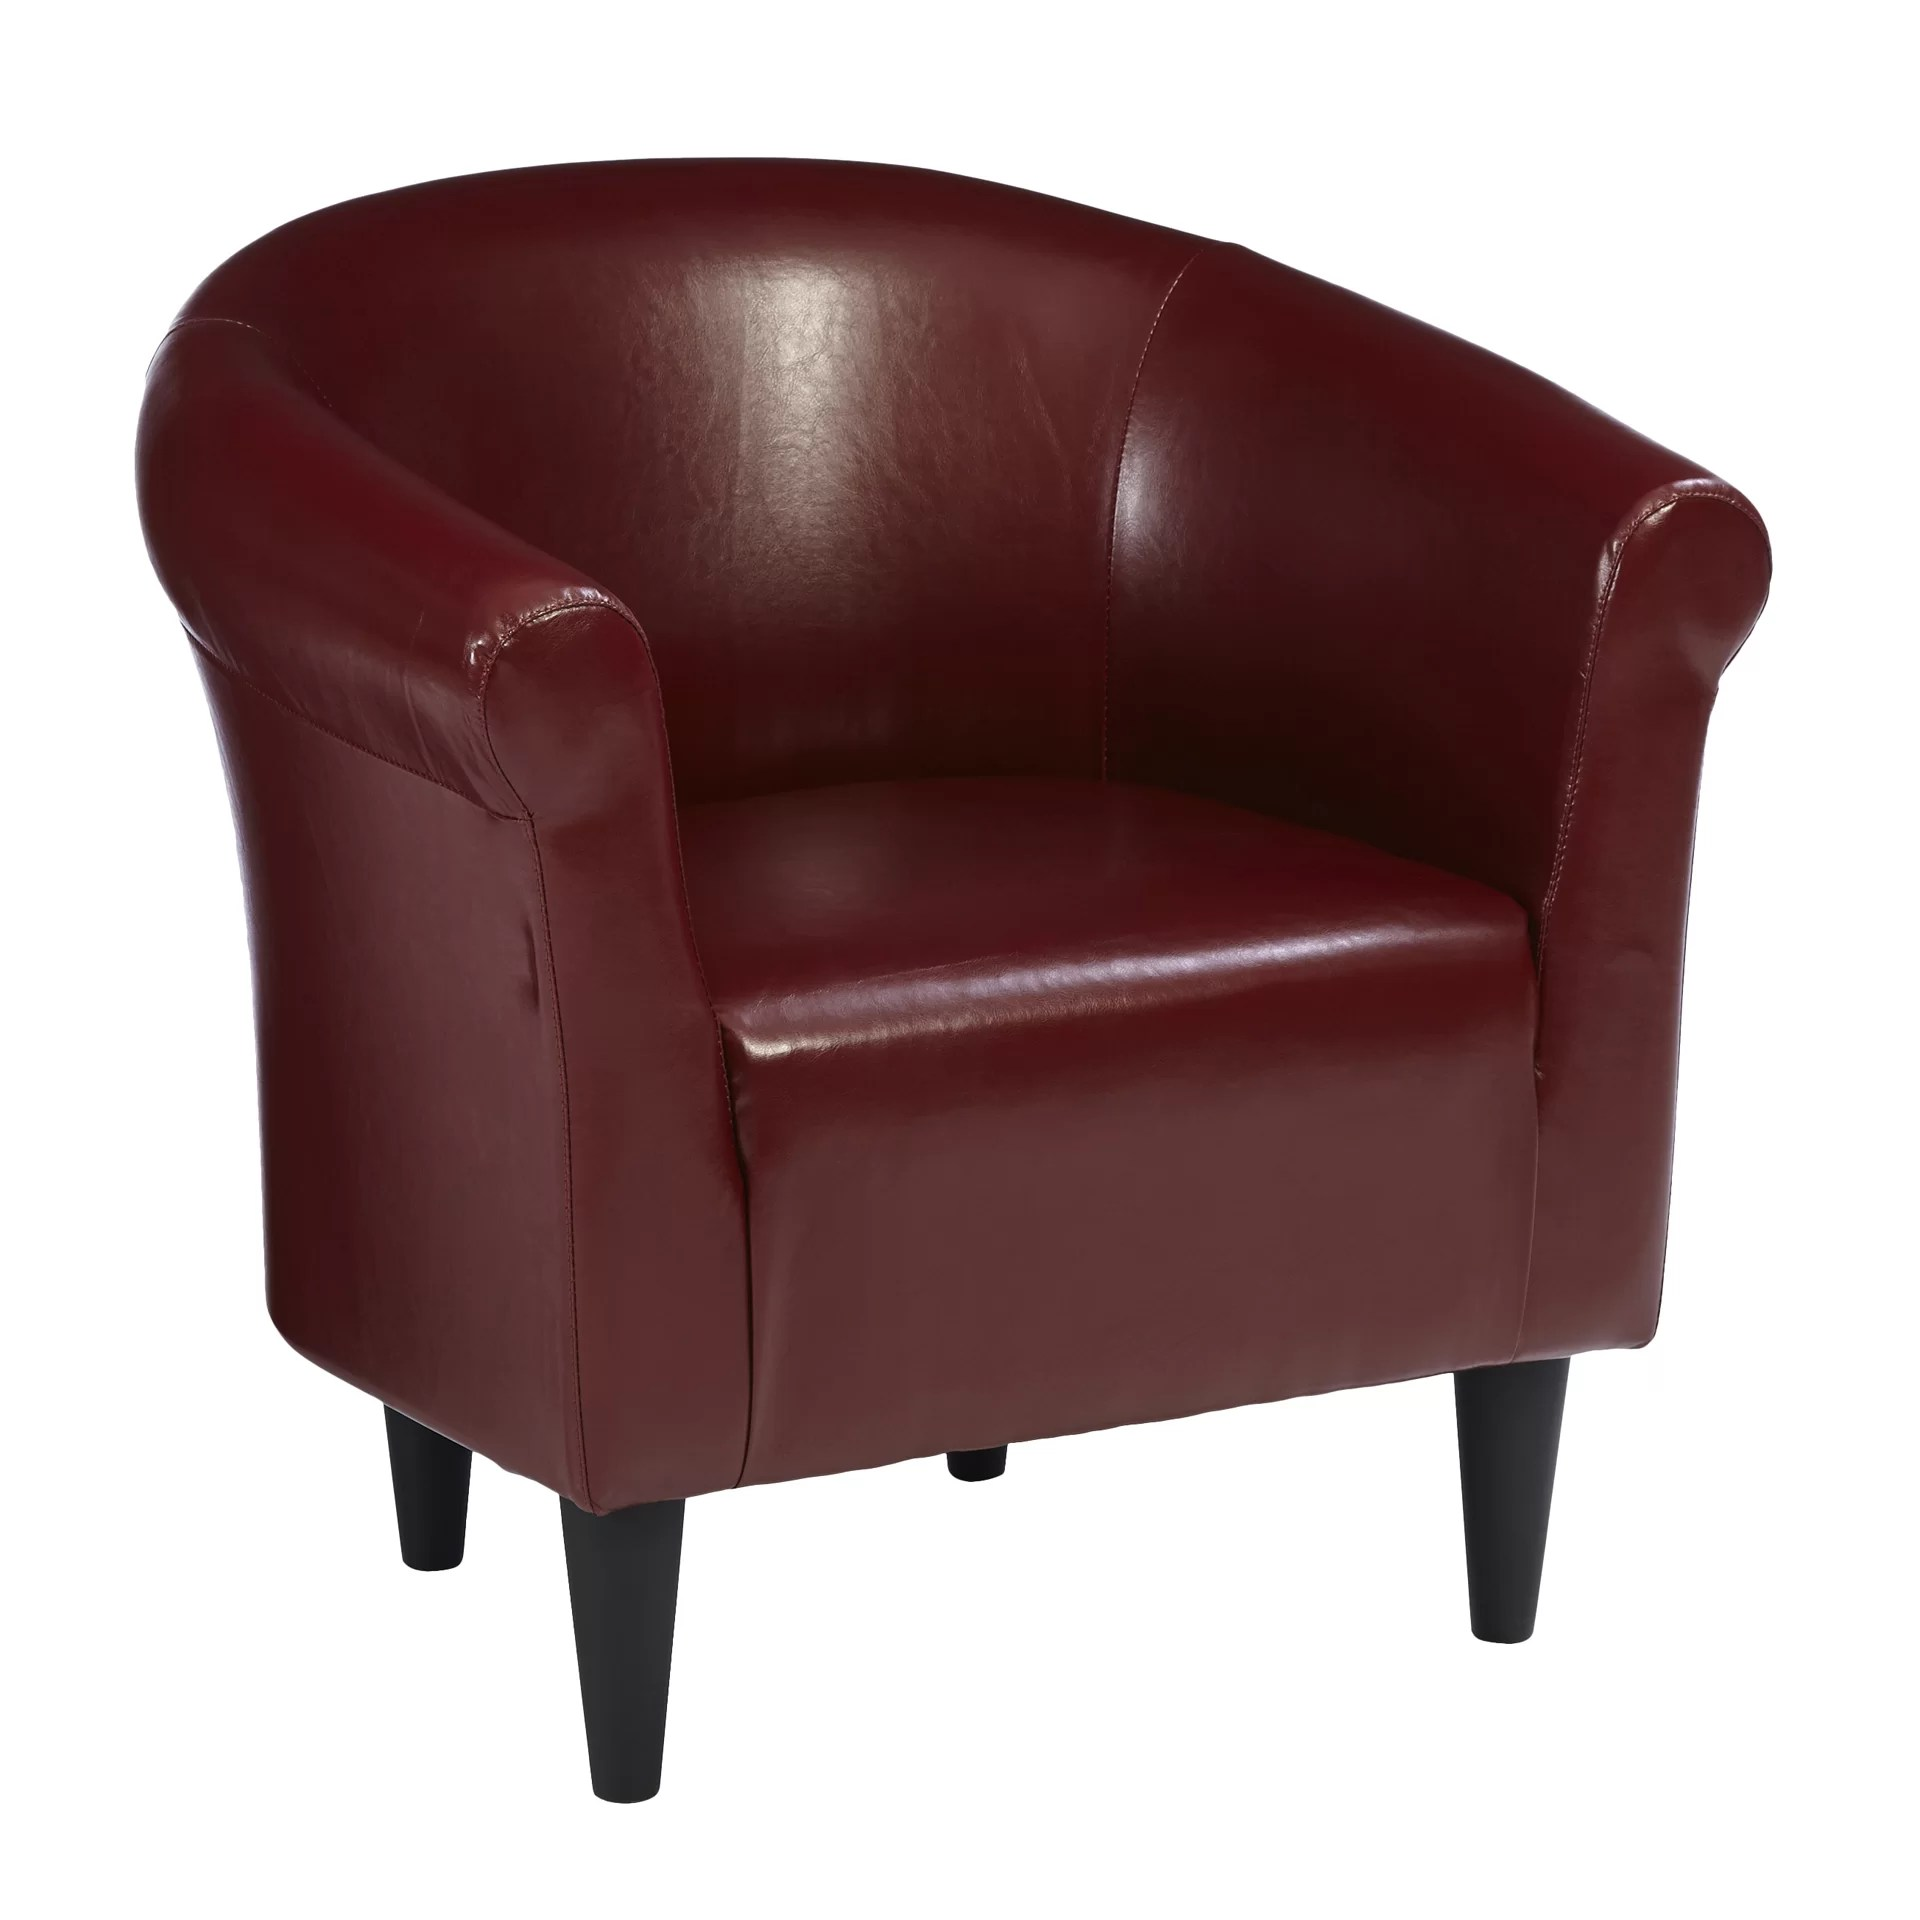 Comfortable Den Furniture Modern Merlot Accent Club Chair Living Room Den Bedroom